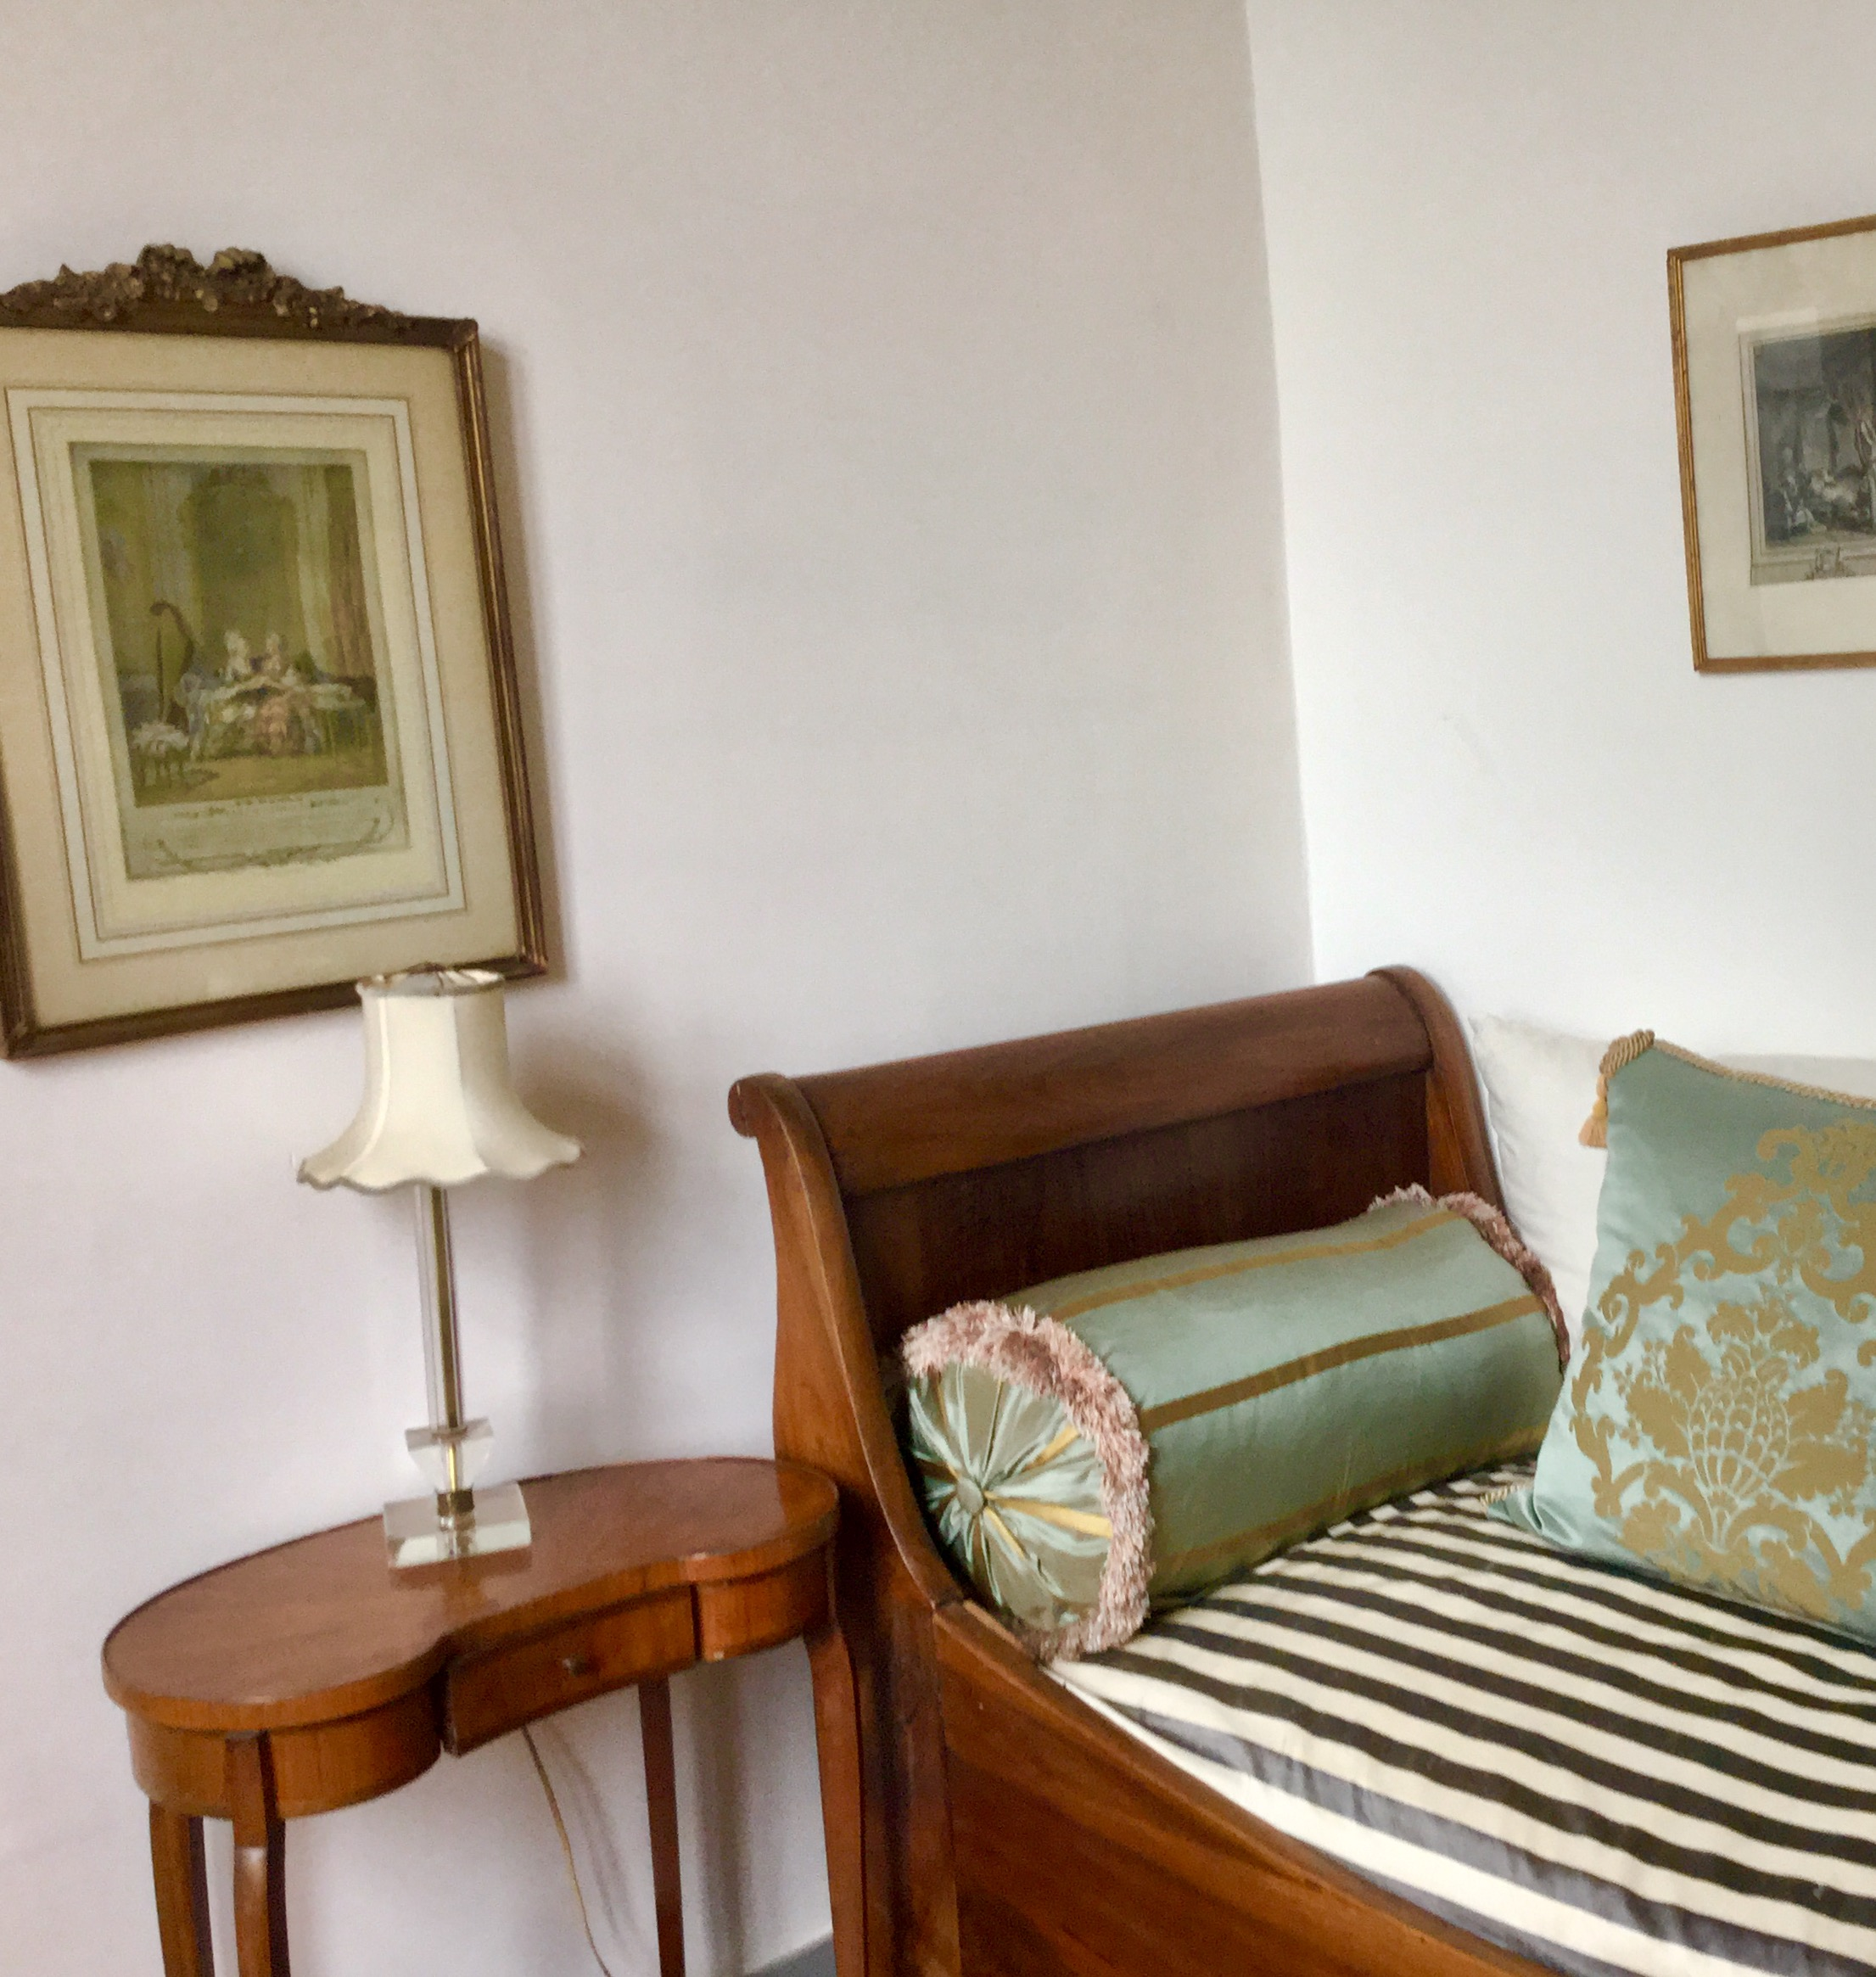 Fiona Lewis - Fiona's French Chateau - Interior French Home